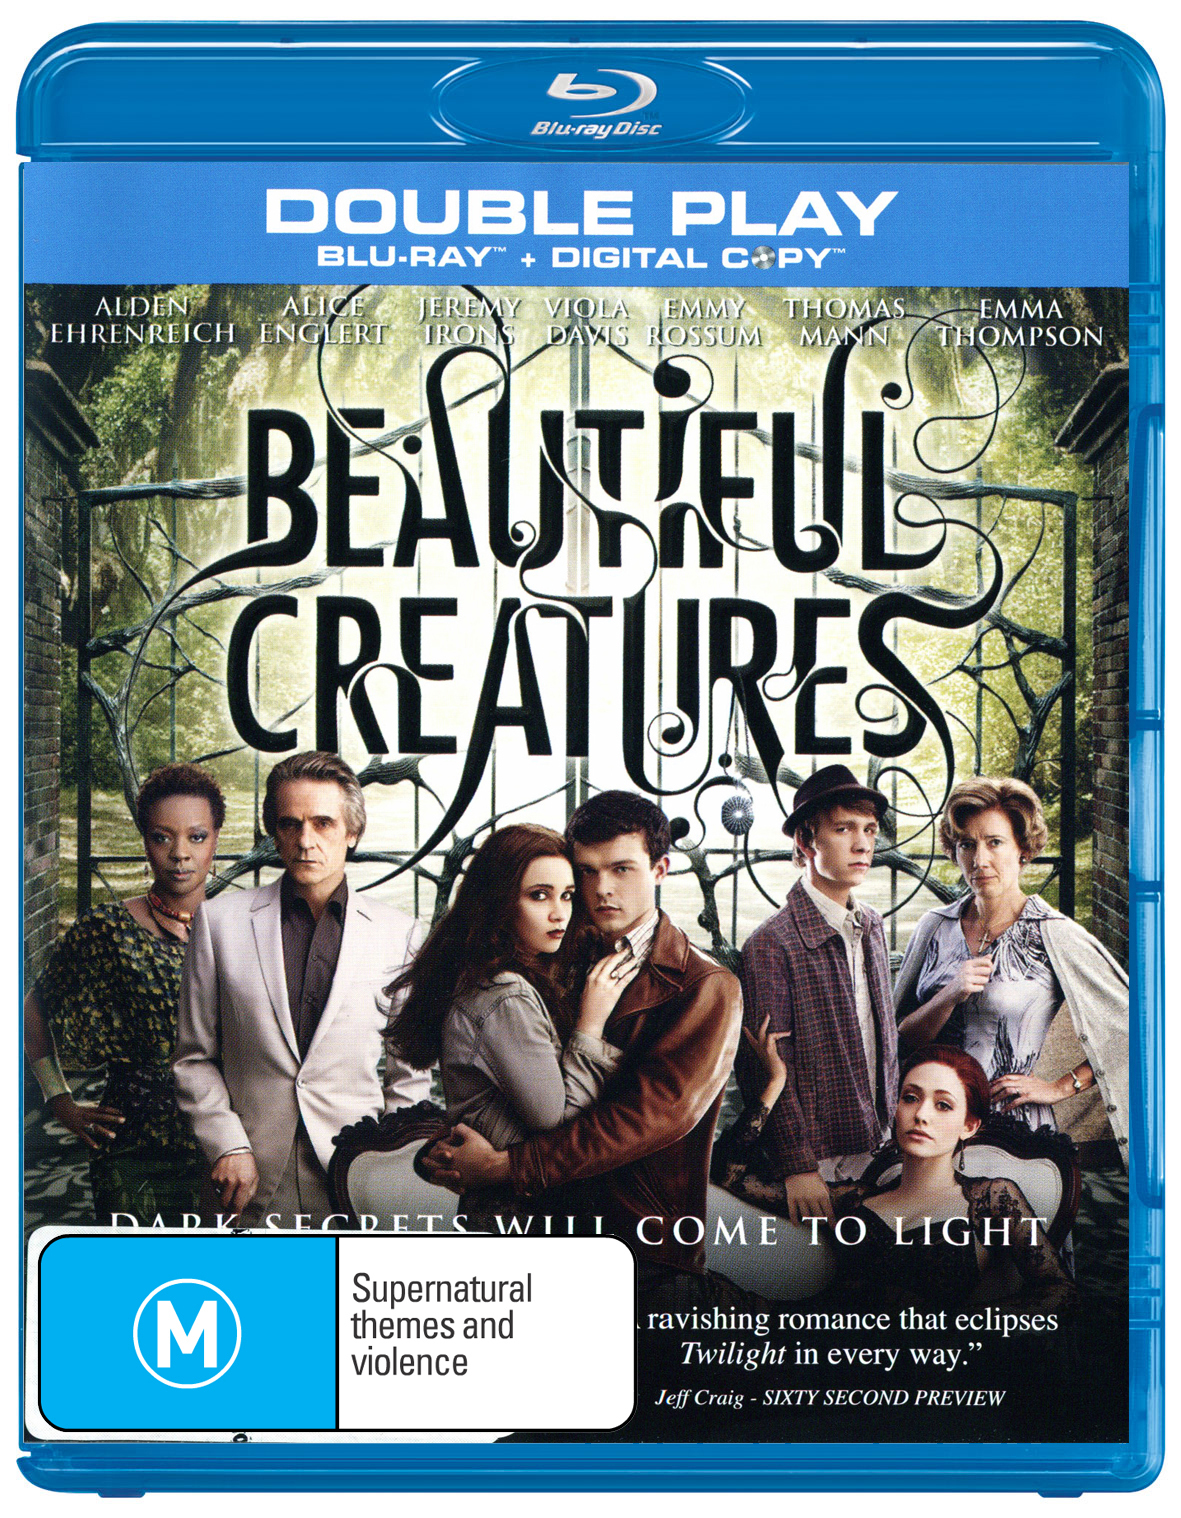 Beautiful Creatures on Blu-ray, DC image